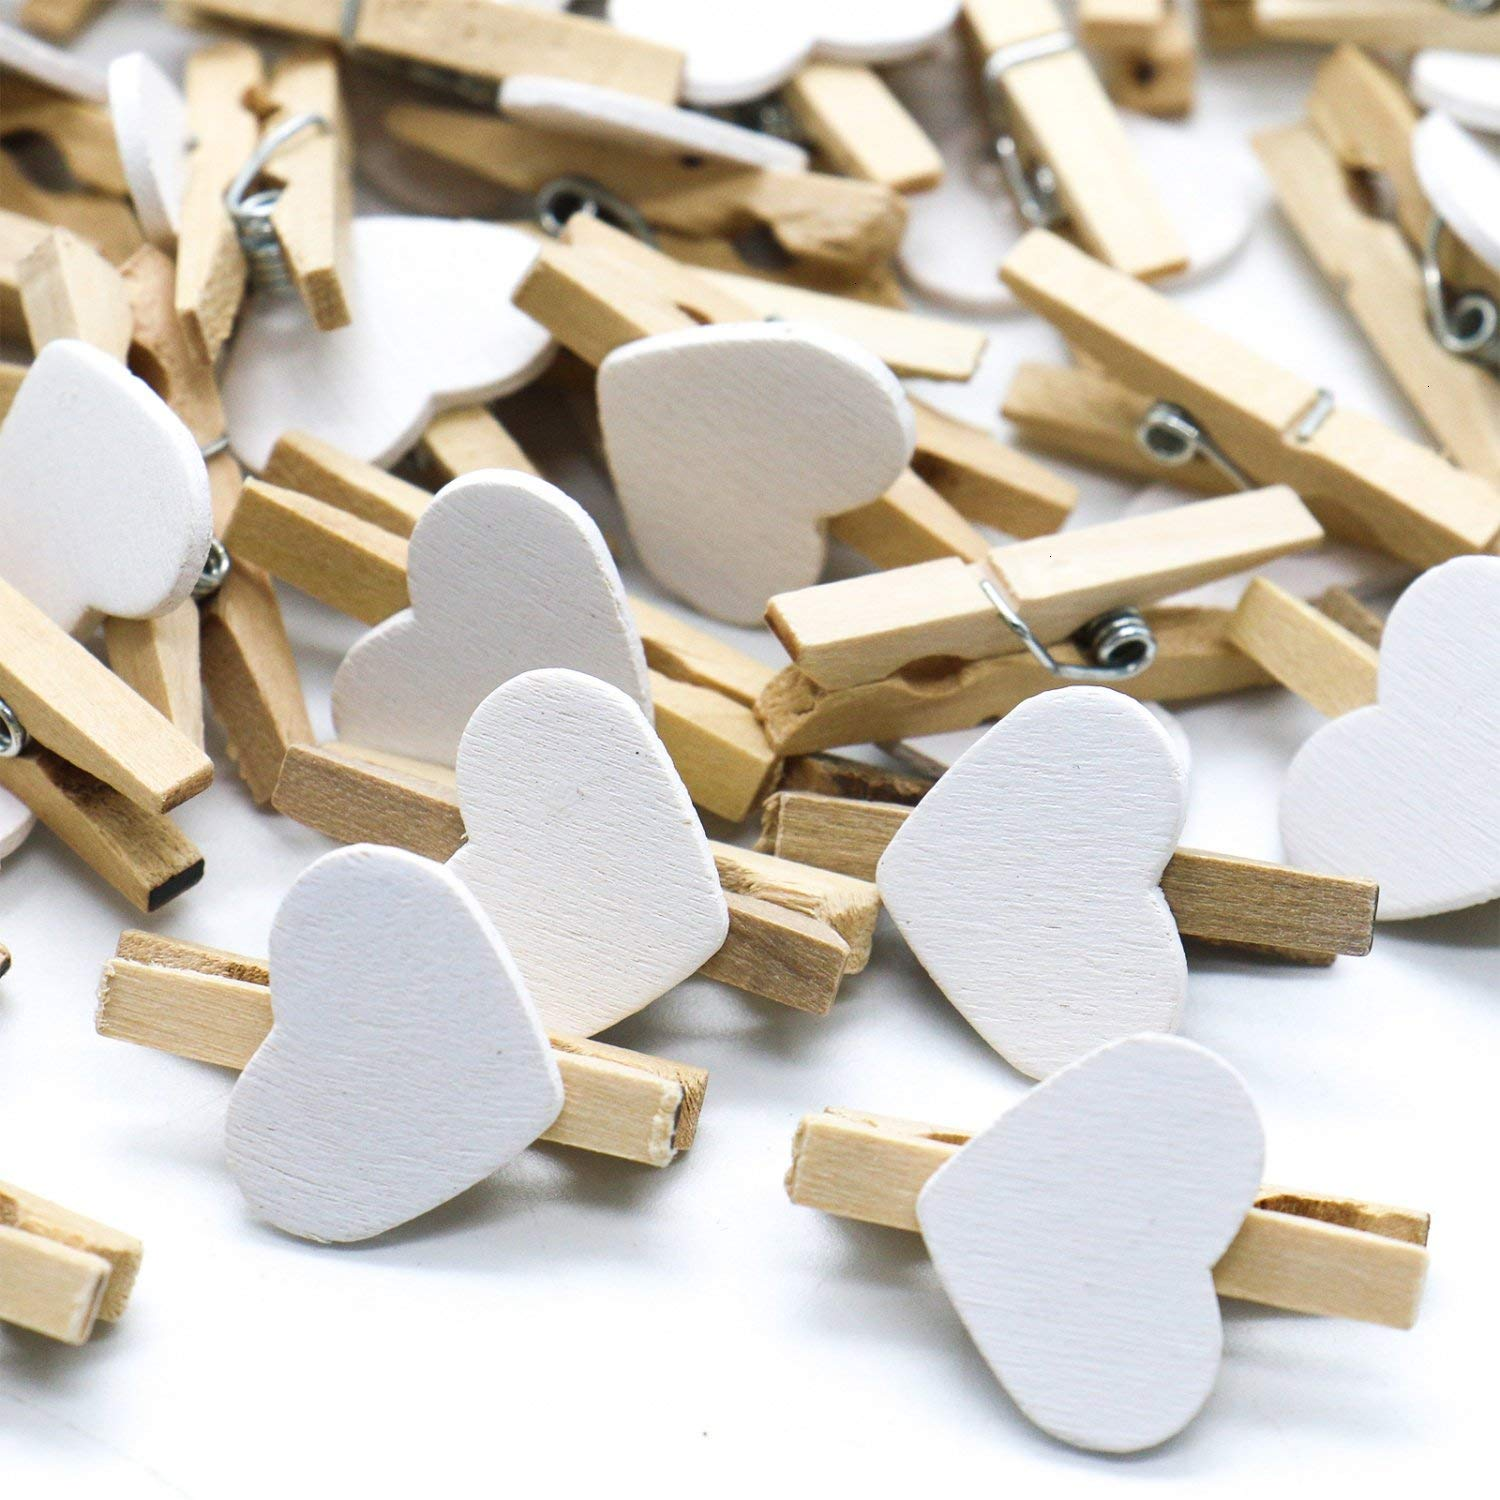 Buorsa 100 Pcs Wooden Mini Clothespins Love And Heart Clothespins For Photos (White)